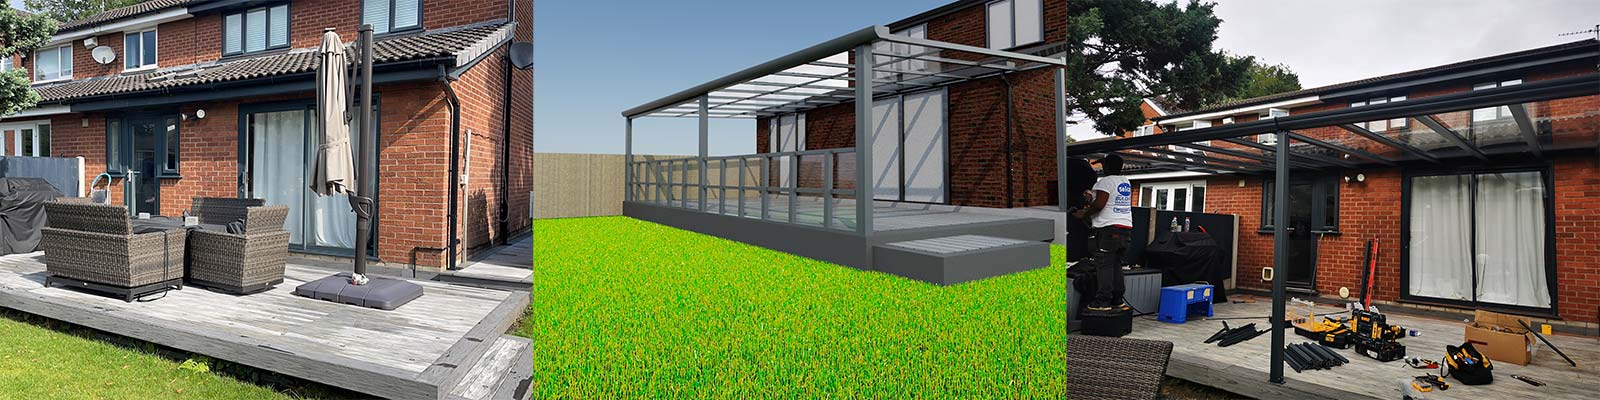 L-Type-PatioCover-Stockport-01